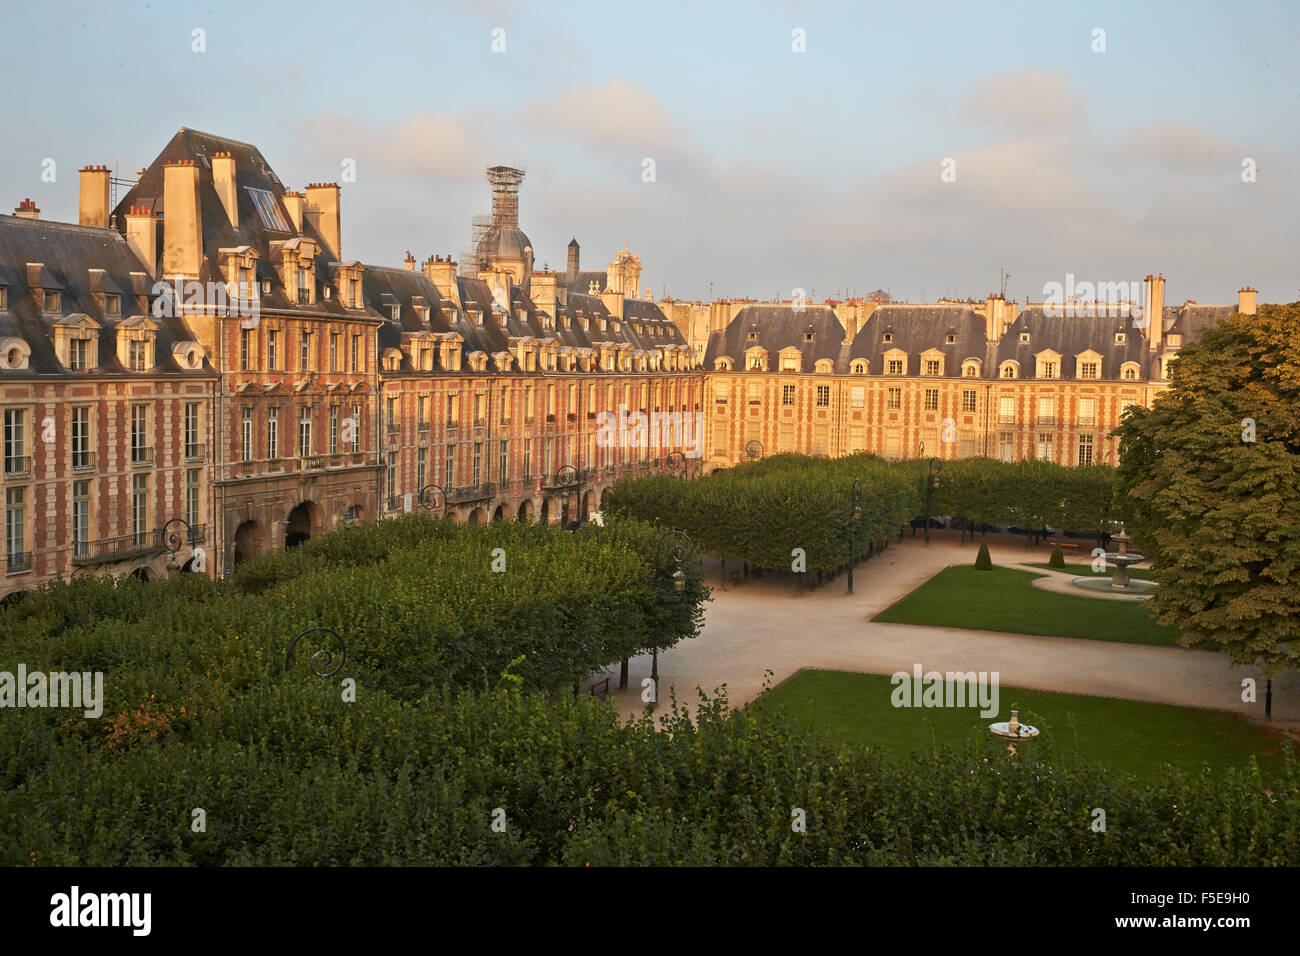 View of the Place des Vosges, Paris, France, Europe - Stock Image